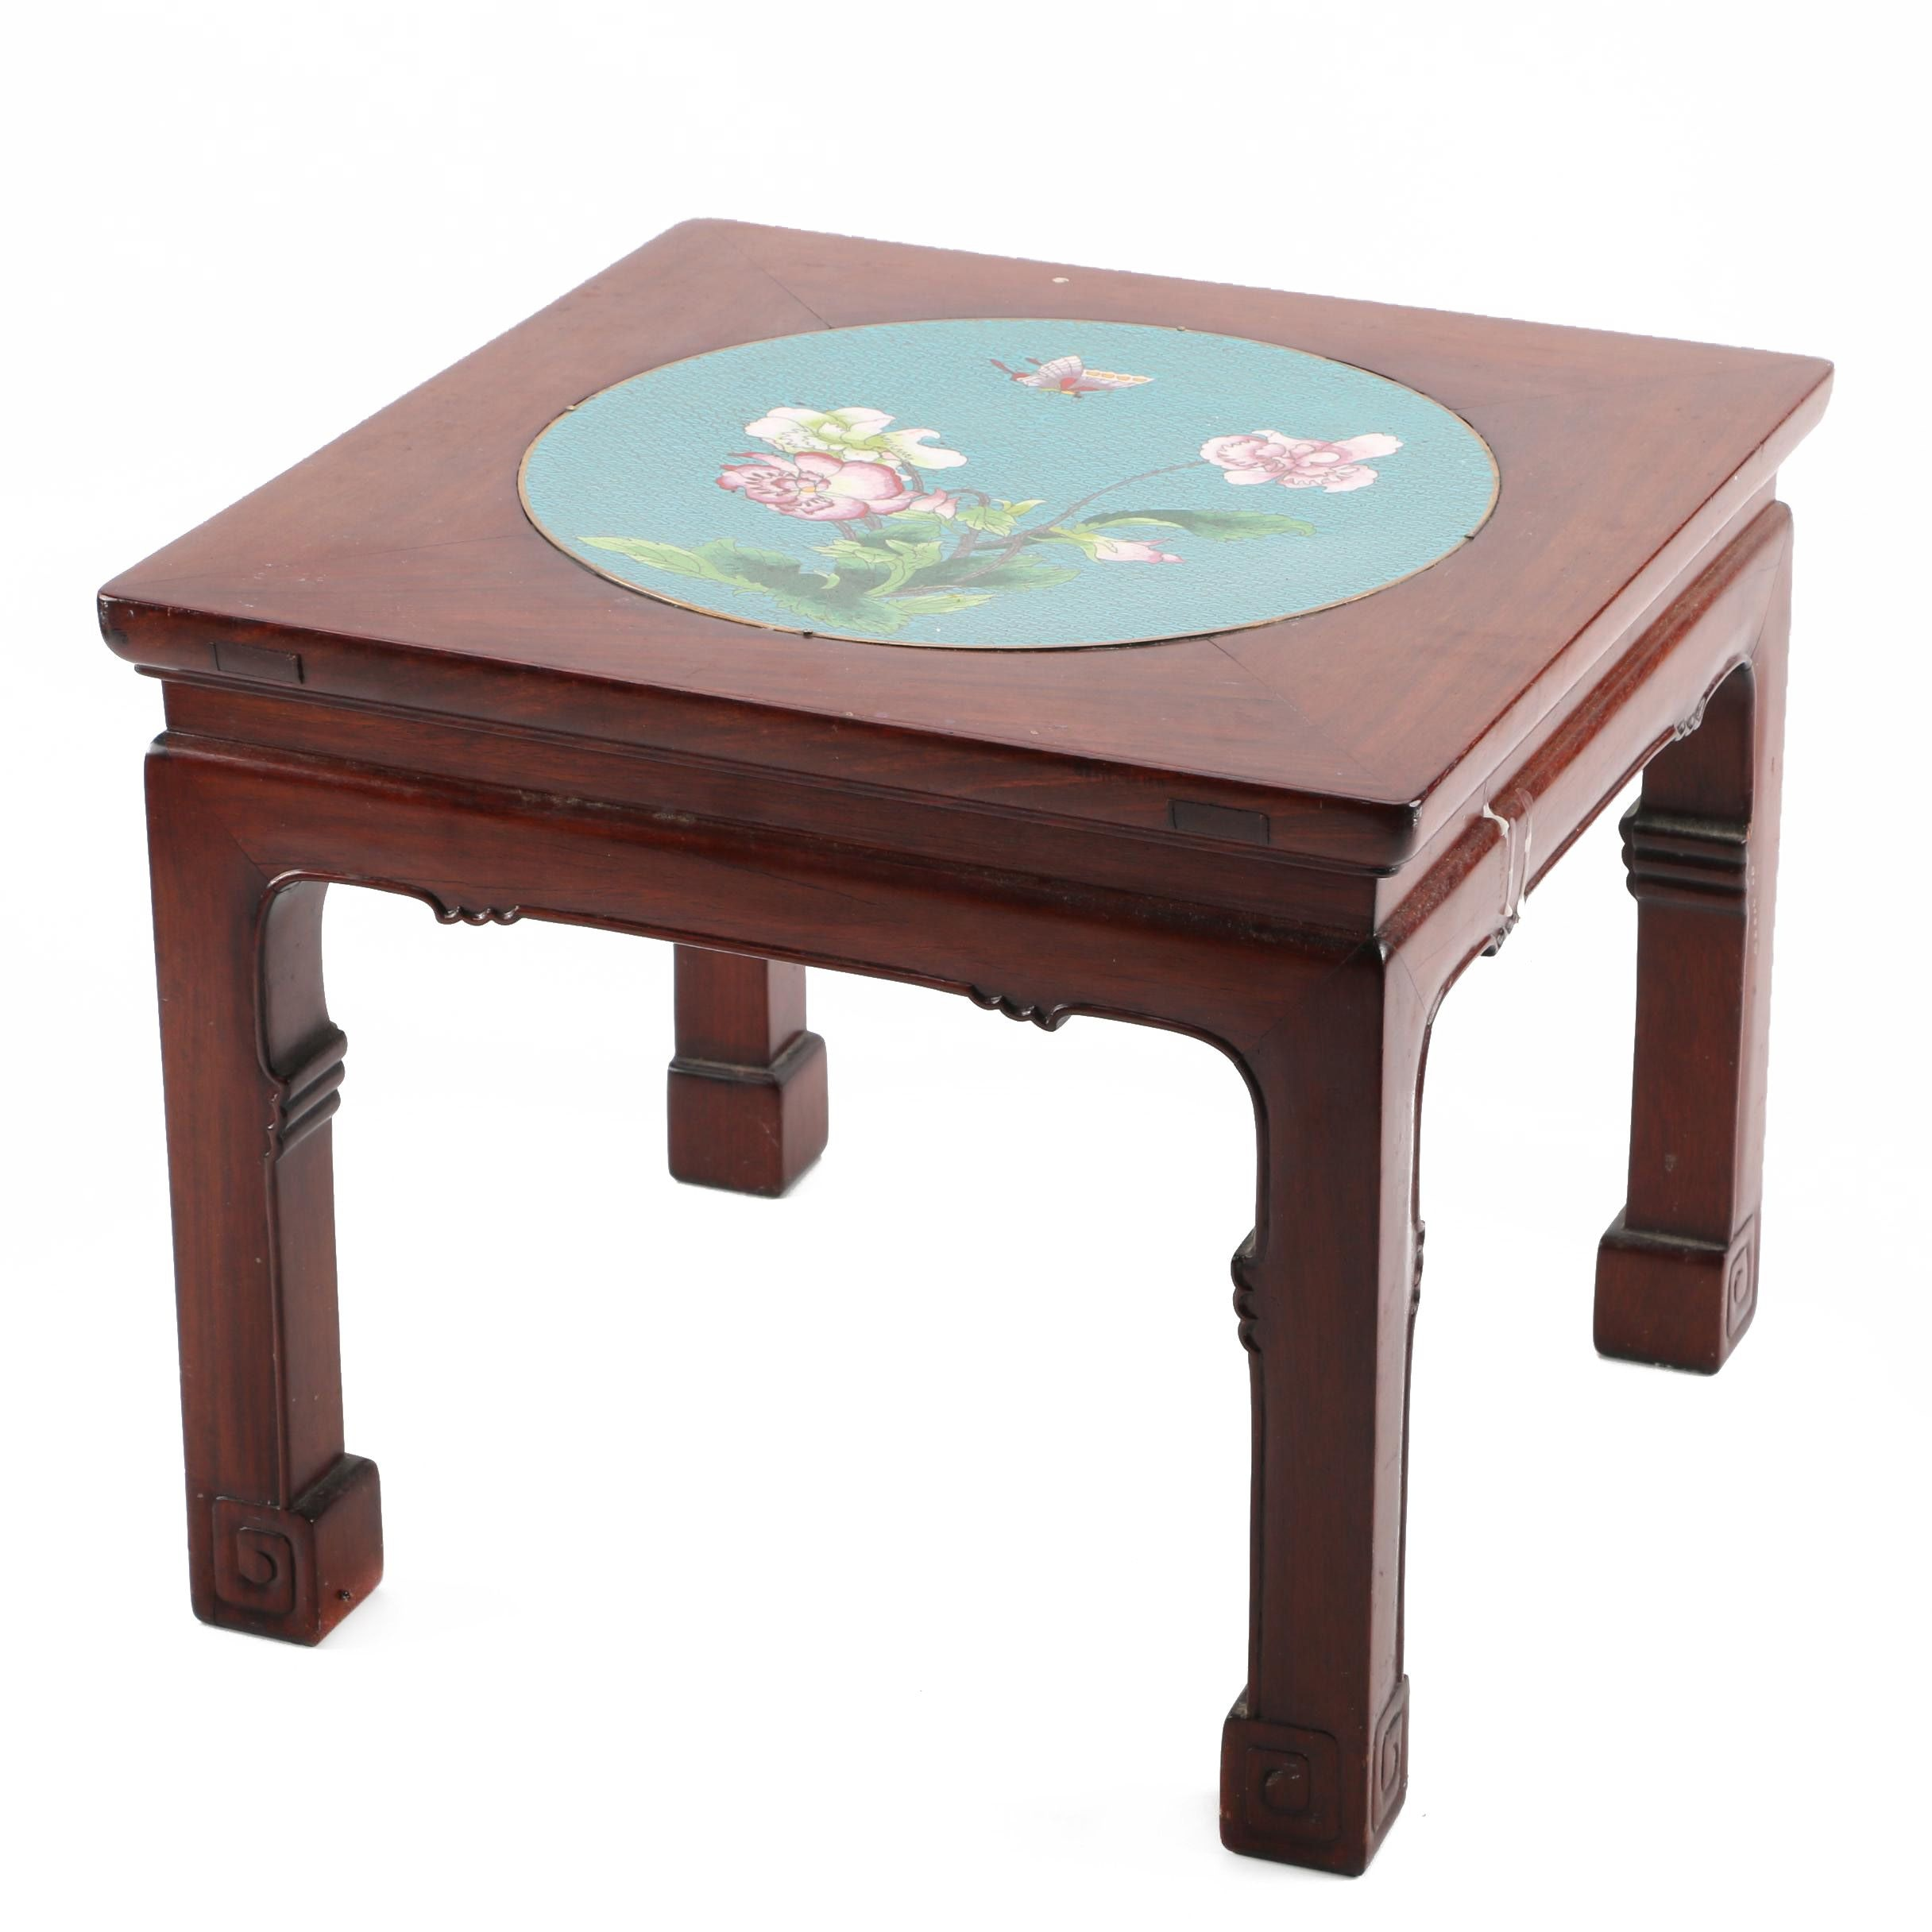 Chinese Teak Table with Cloisonné Insert